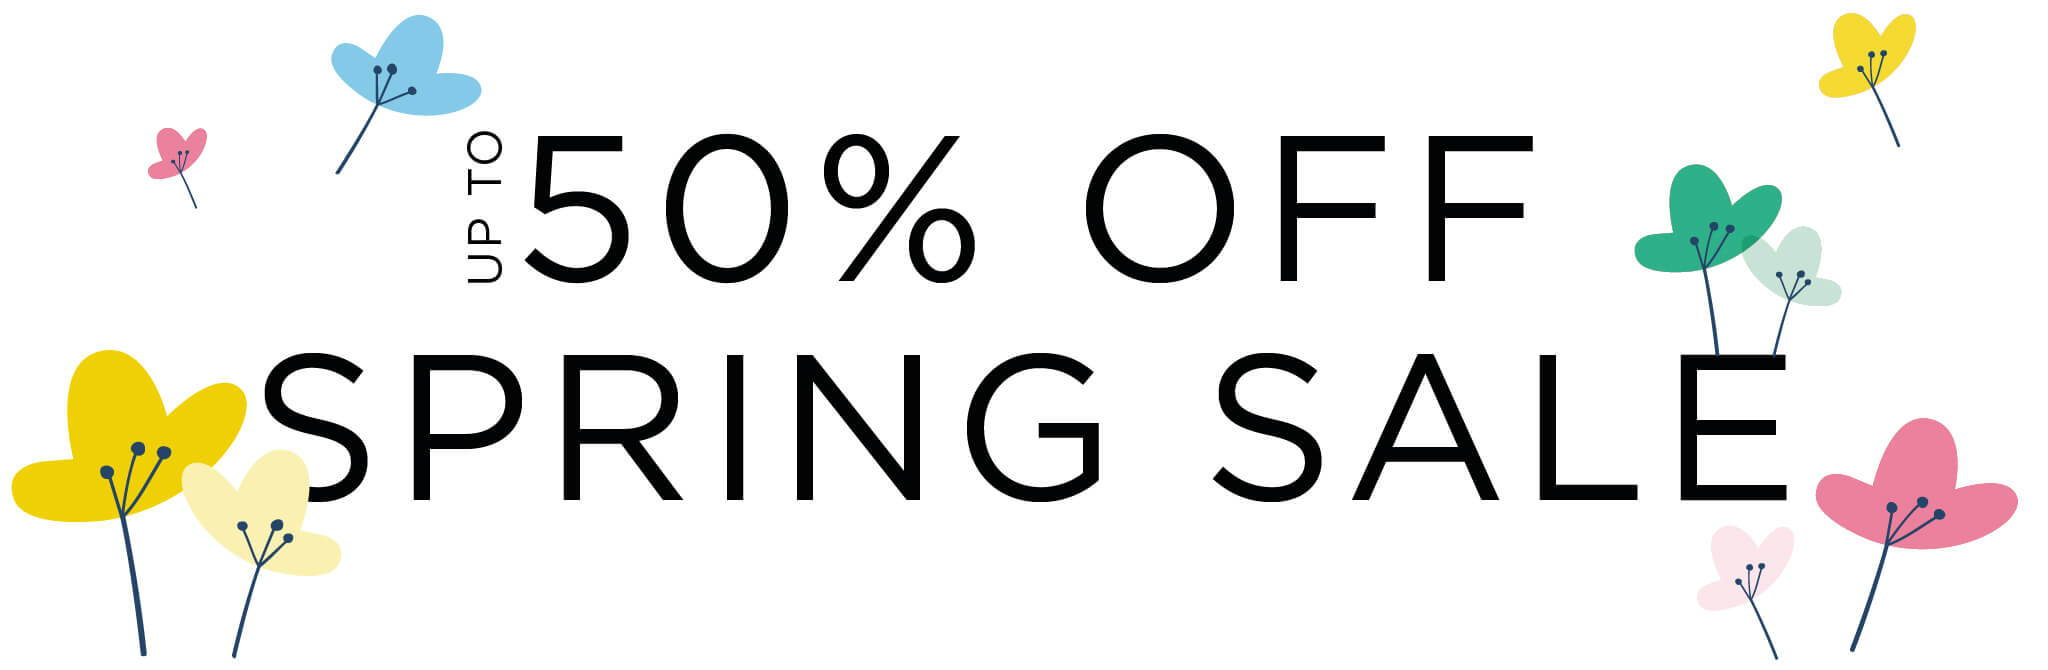 up to 50% off spring sale